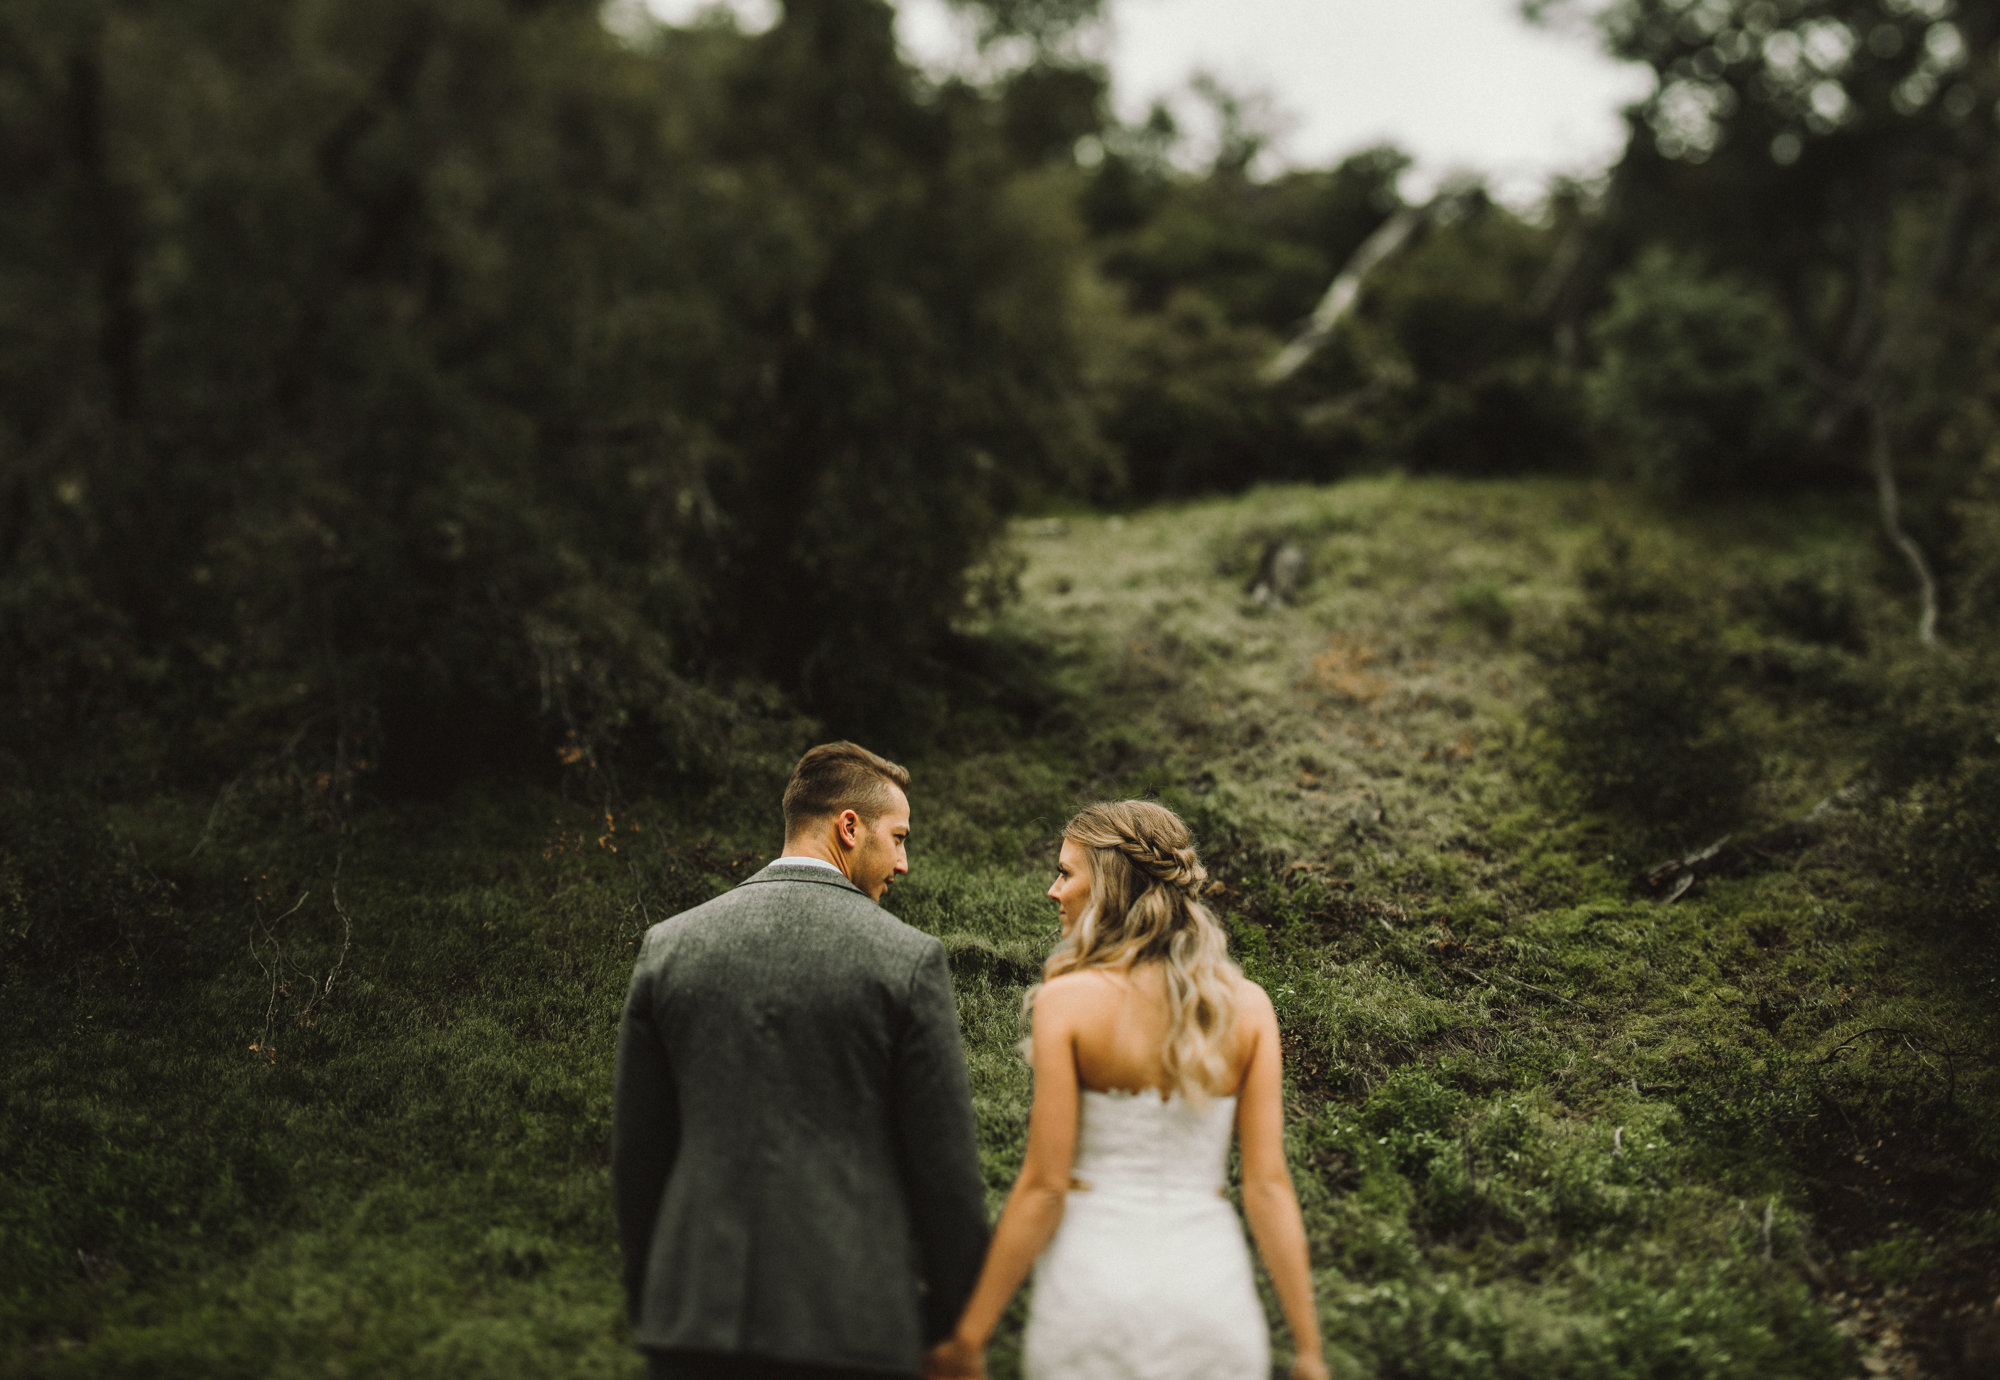 Isaiah & Taylor Photography - Los Angeles - Destination Wedding Photographers - Oak Glen Wilshire Ranch Foggy Forest Wedding-48.jpg